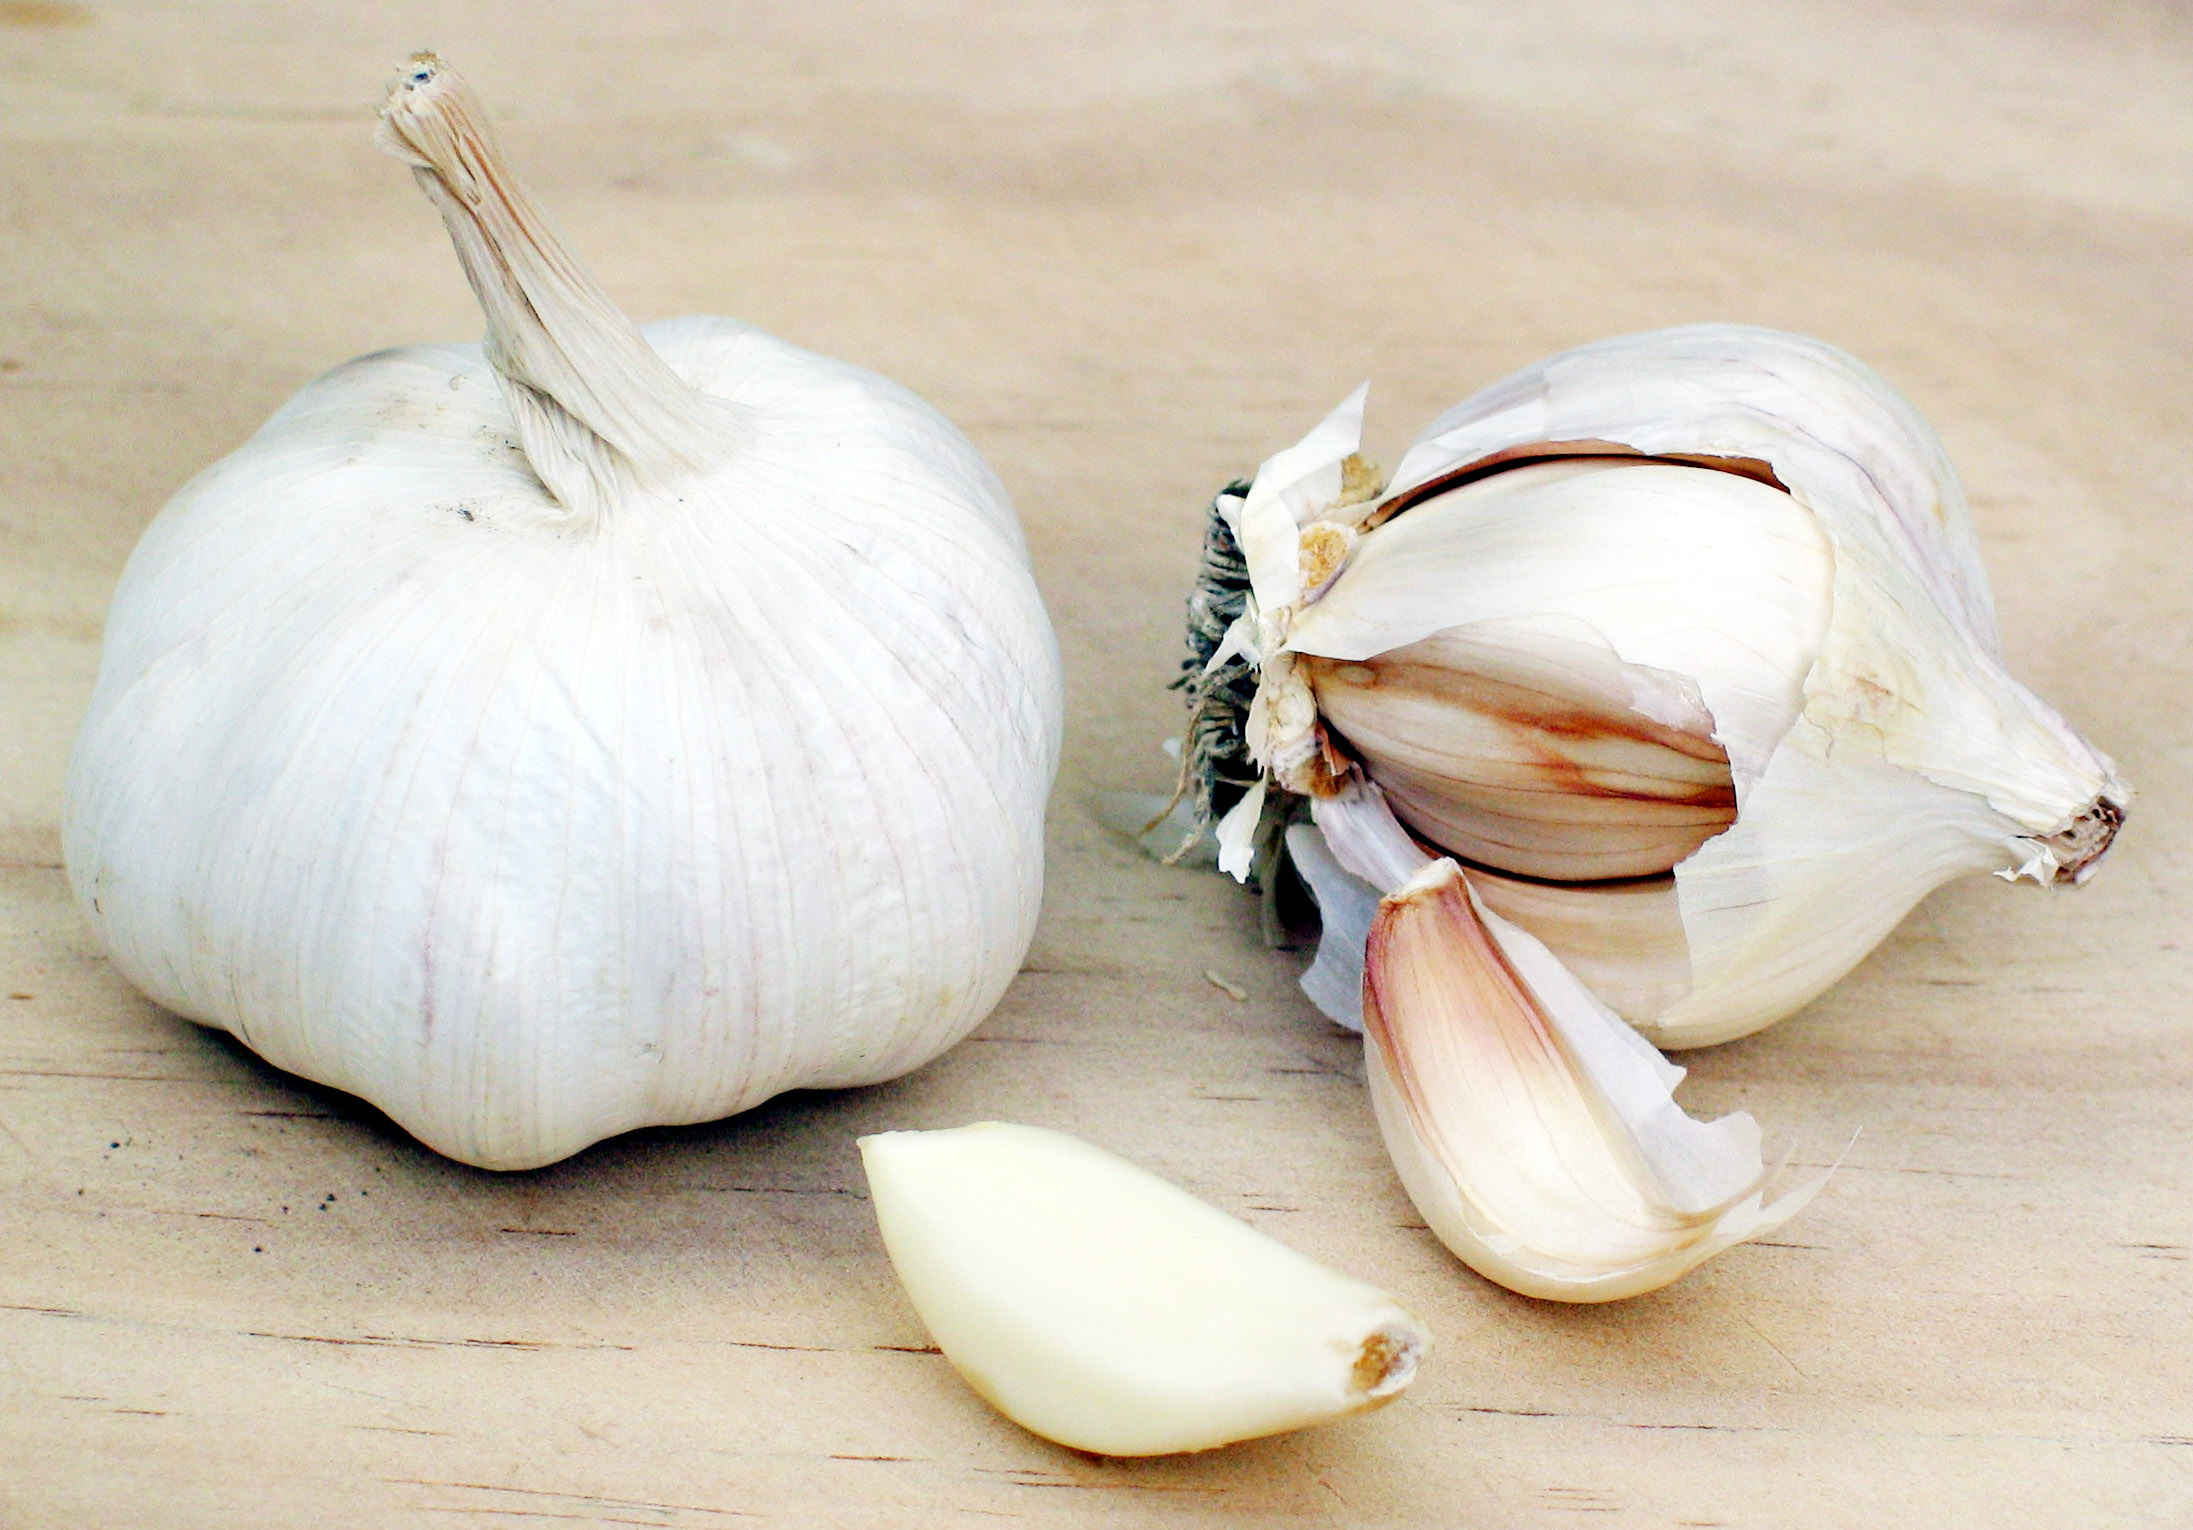 File:Garlic.jpg - Wikipedia, the free encyclopedia